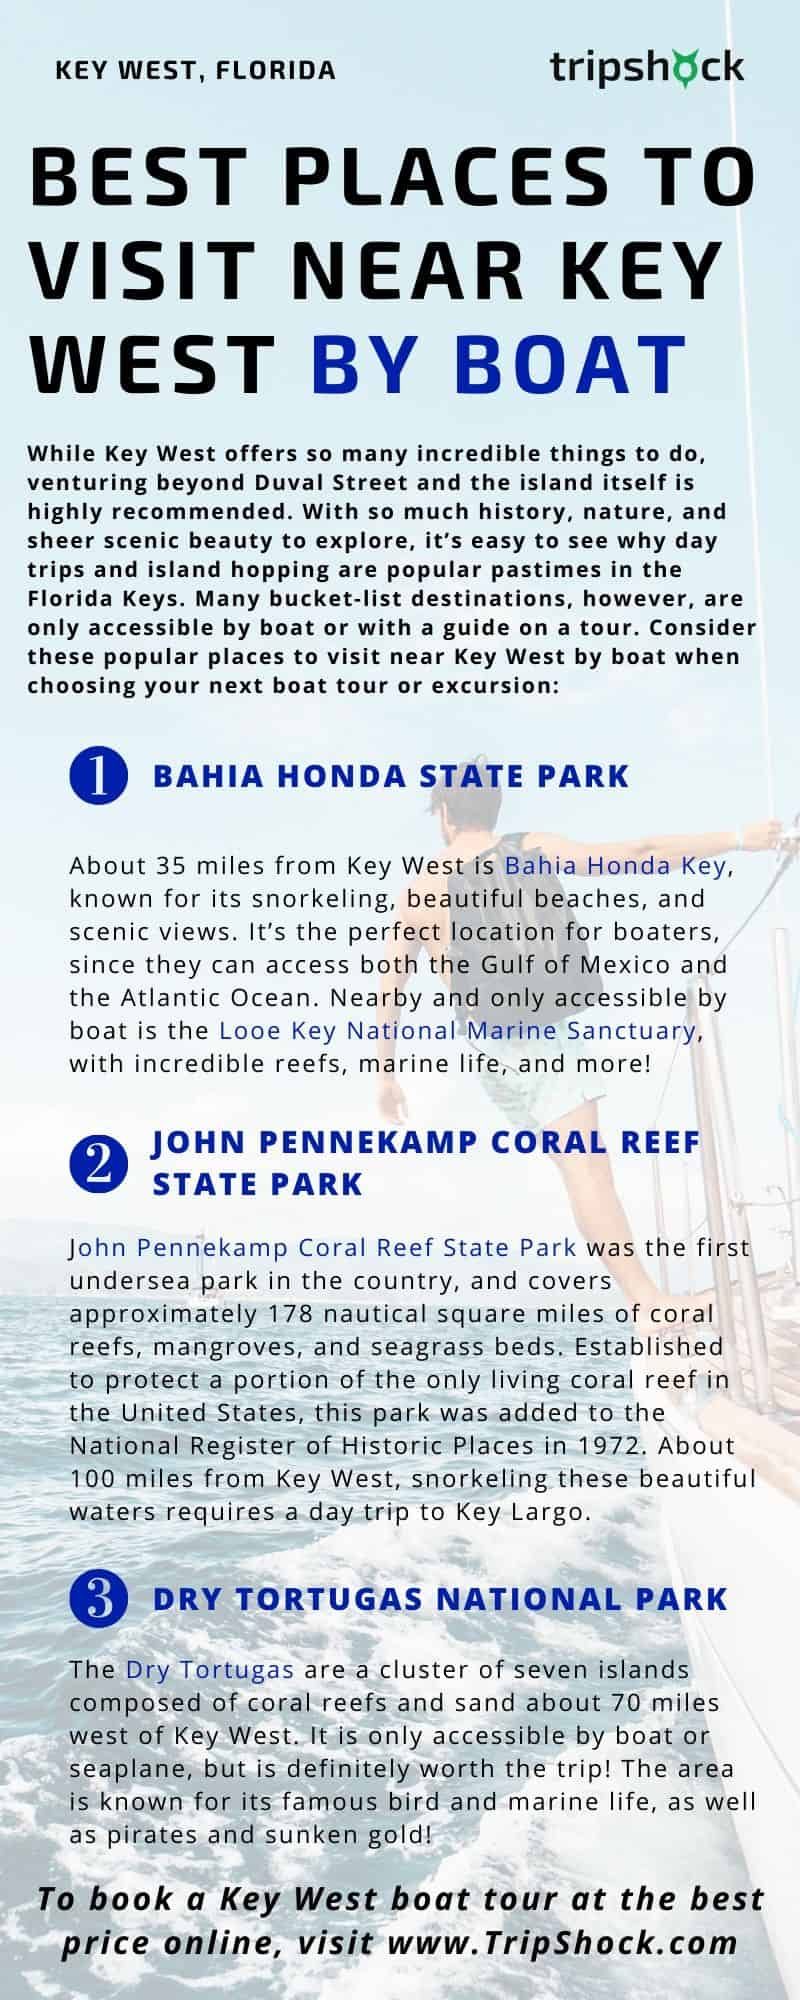 Best Places to Visit Near Key West By Boat